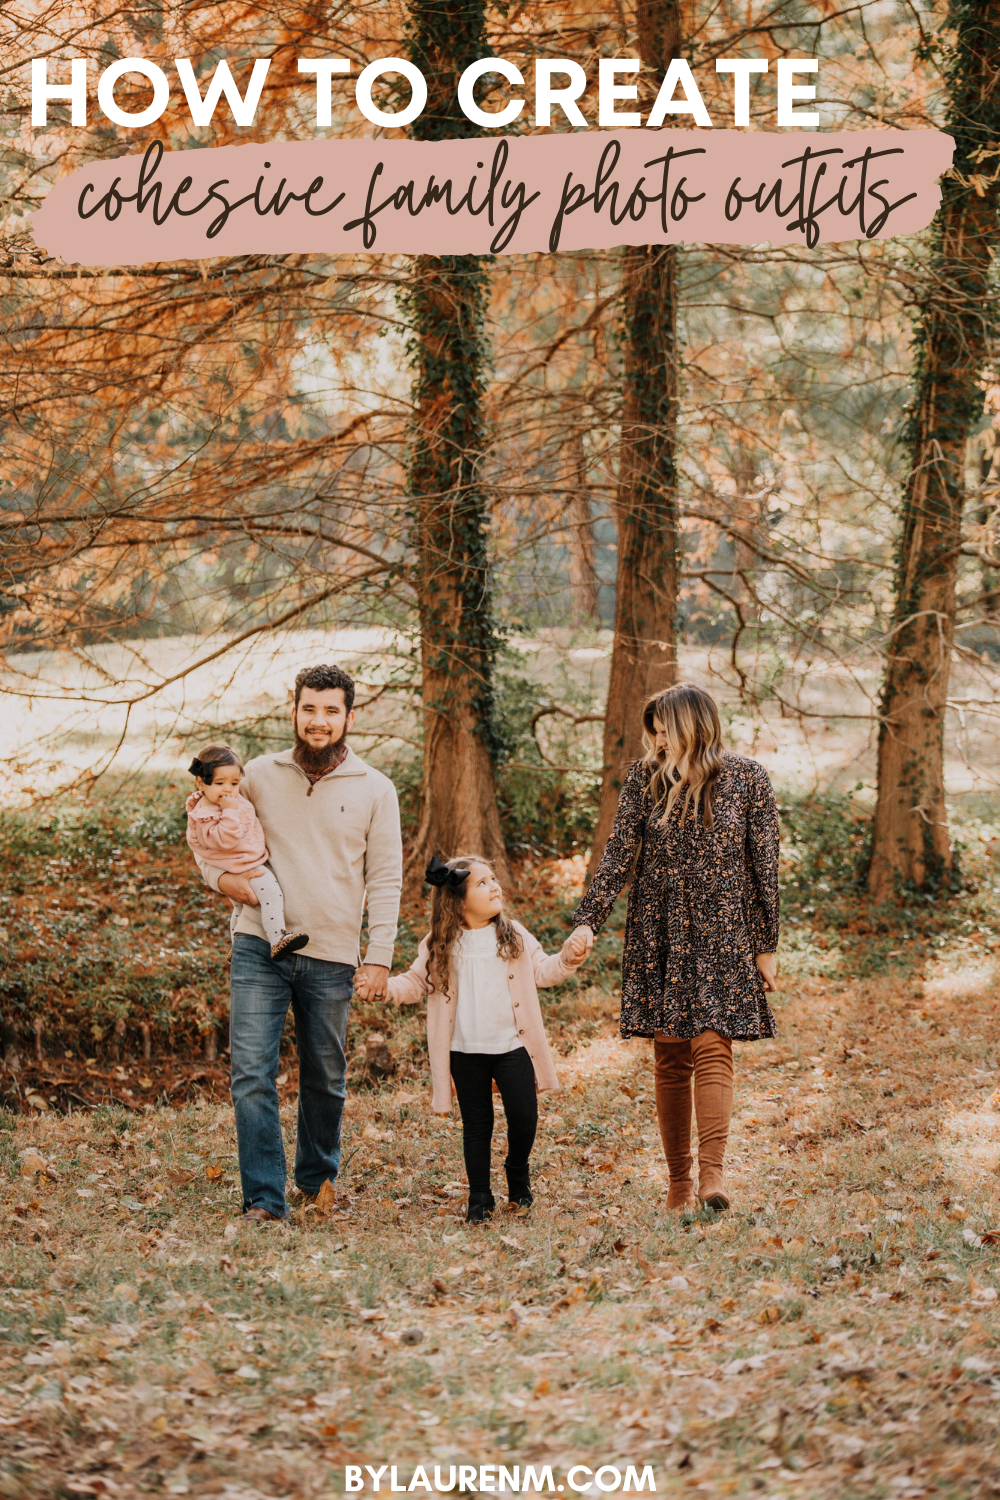 Virginia mom blogger, Lauren Dix, shares her top five tips for family photo outfits!